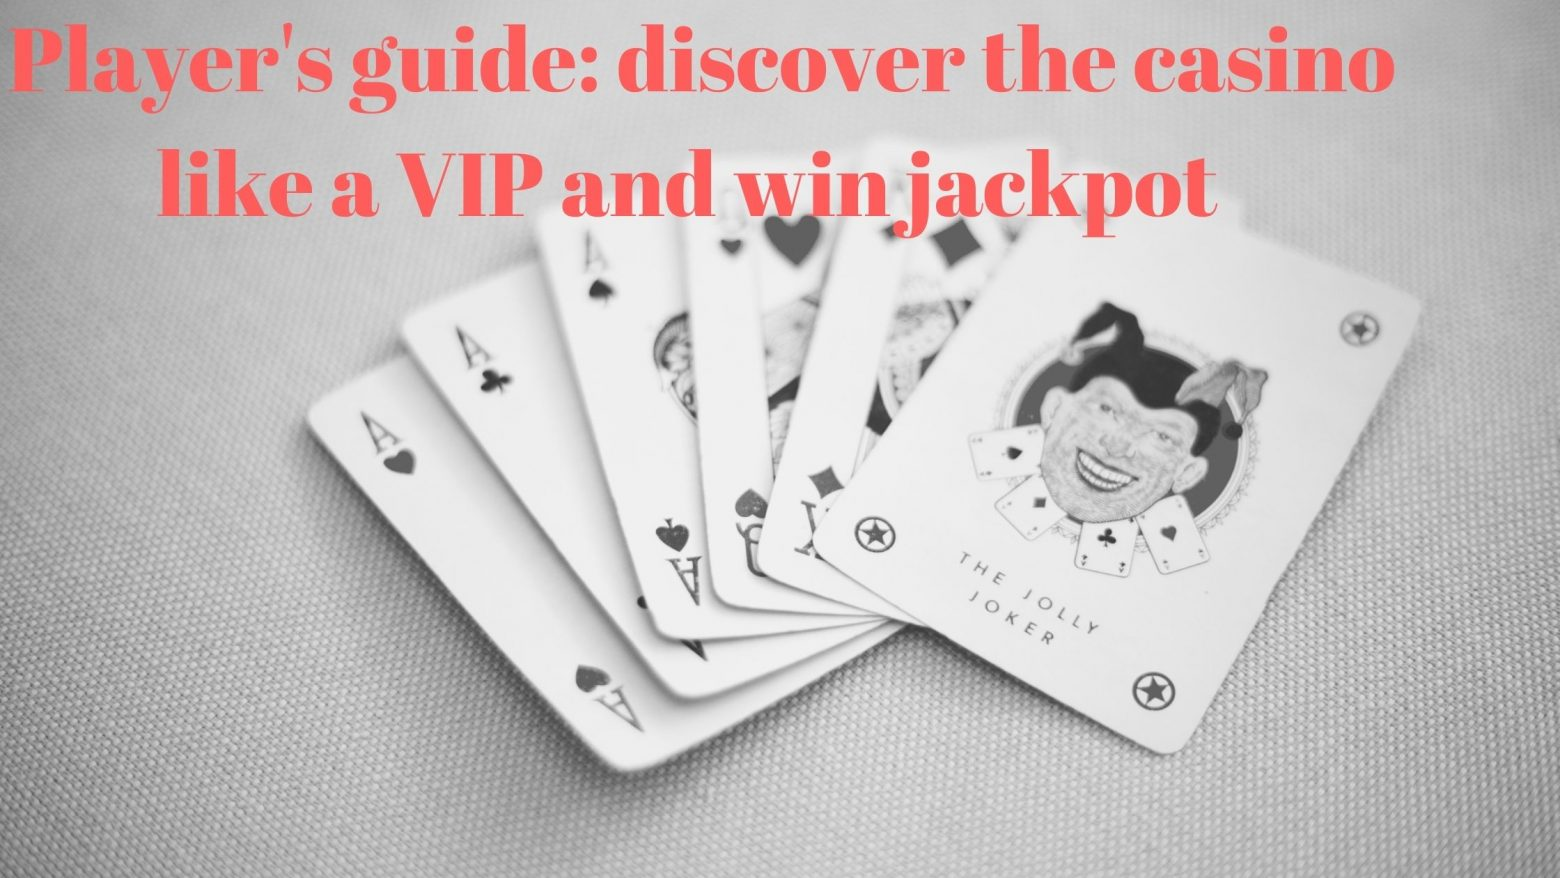 Player's guide to discover casino to win jackpot